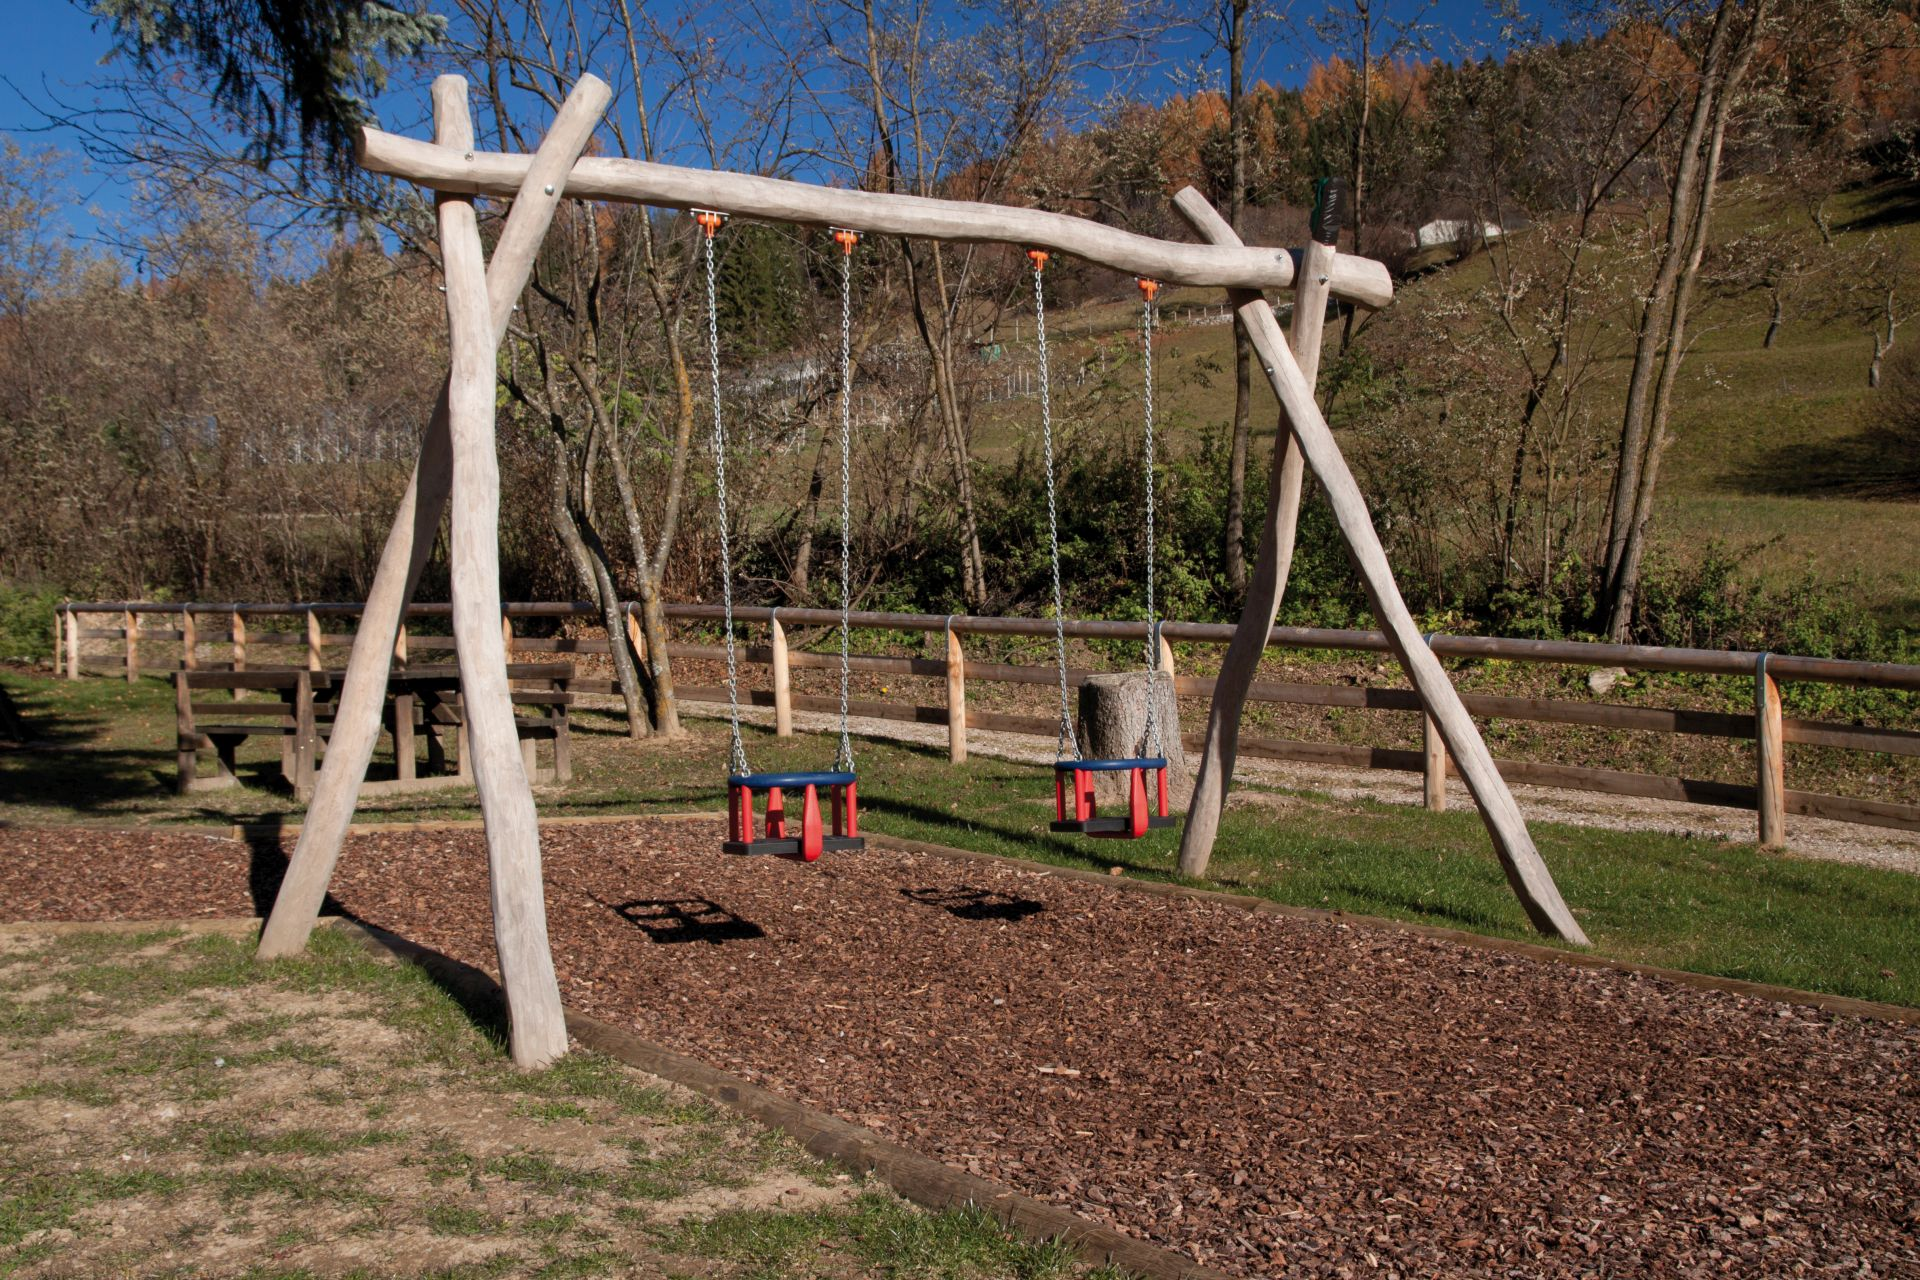 Holzhof COUNTRY (FACILITIES IN ROBINIA WOOD) Swing in robinia with 2 palm shape seats, posts for surface